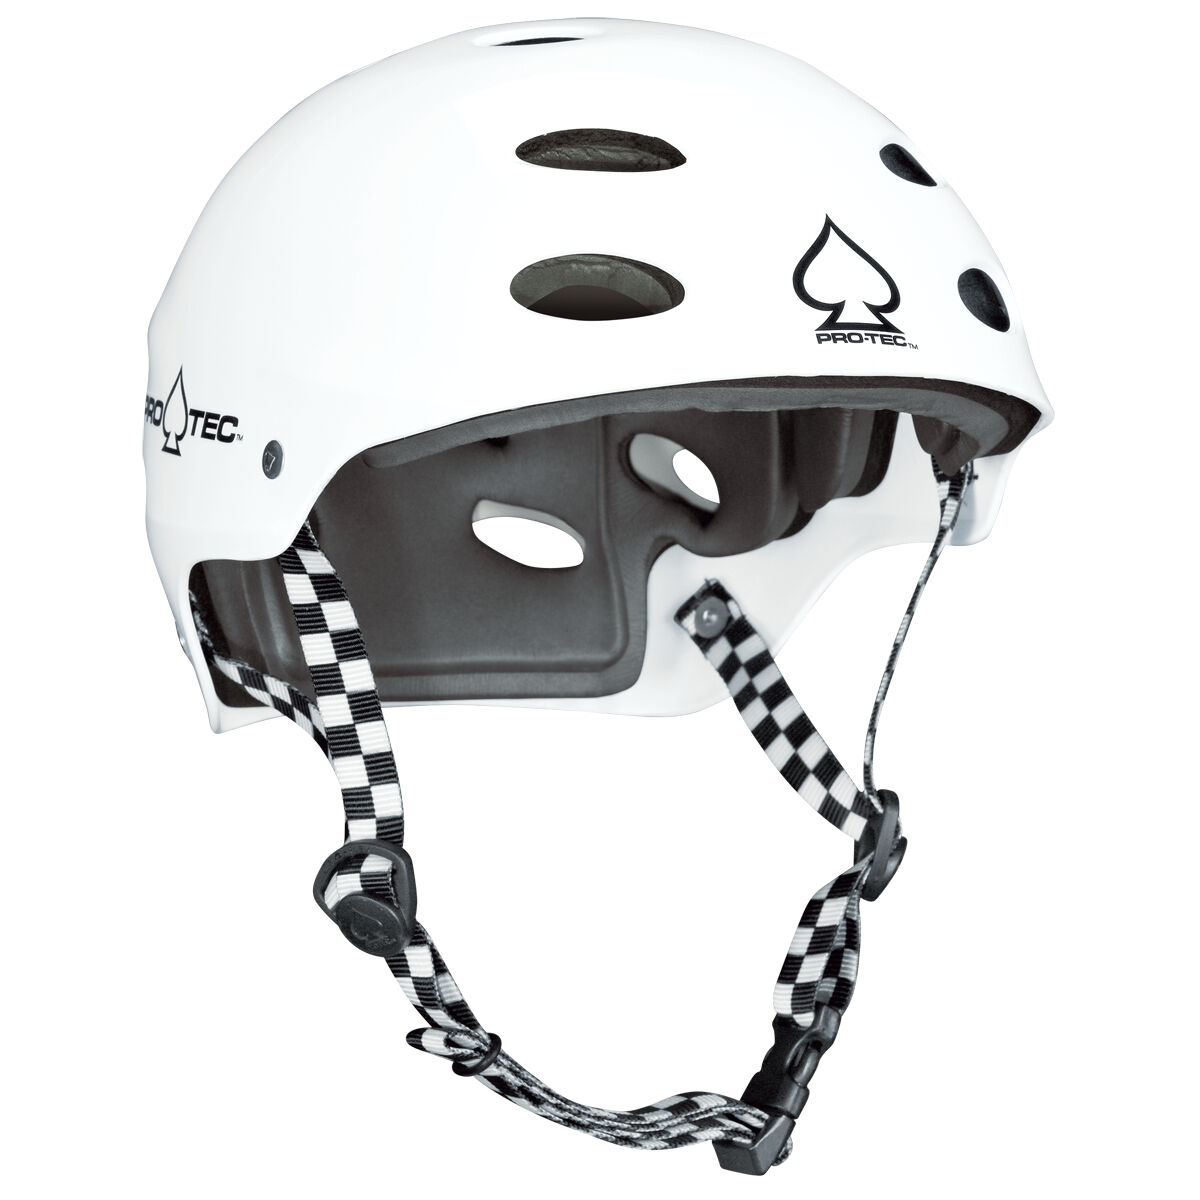 ProTec Ace Watersports Helmet White XL   XXL Canoe Kayak Wake Rafting